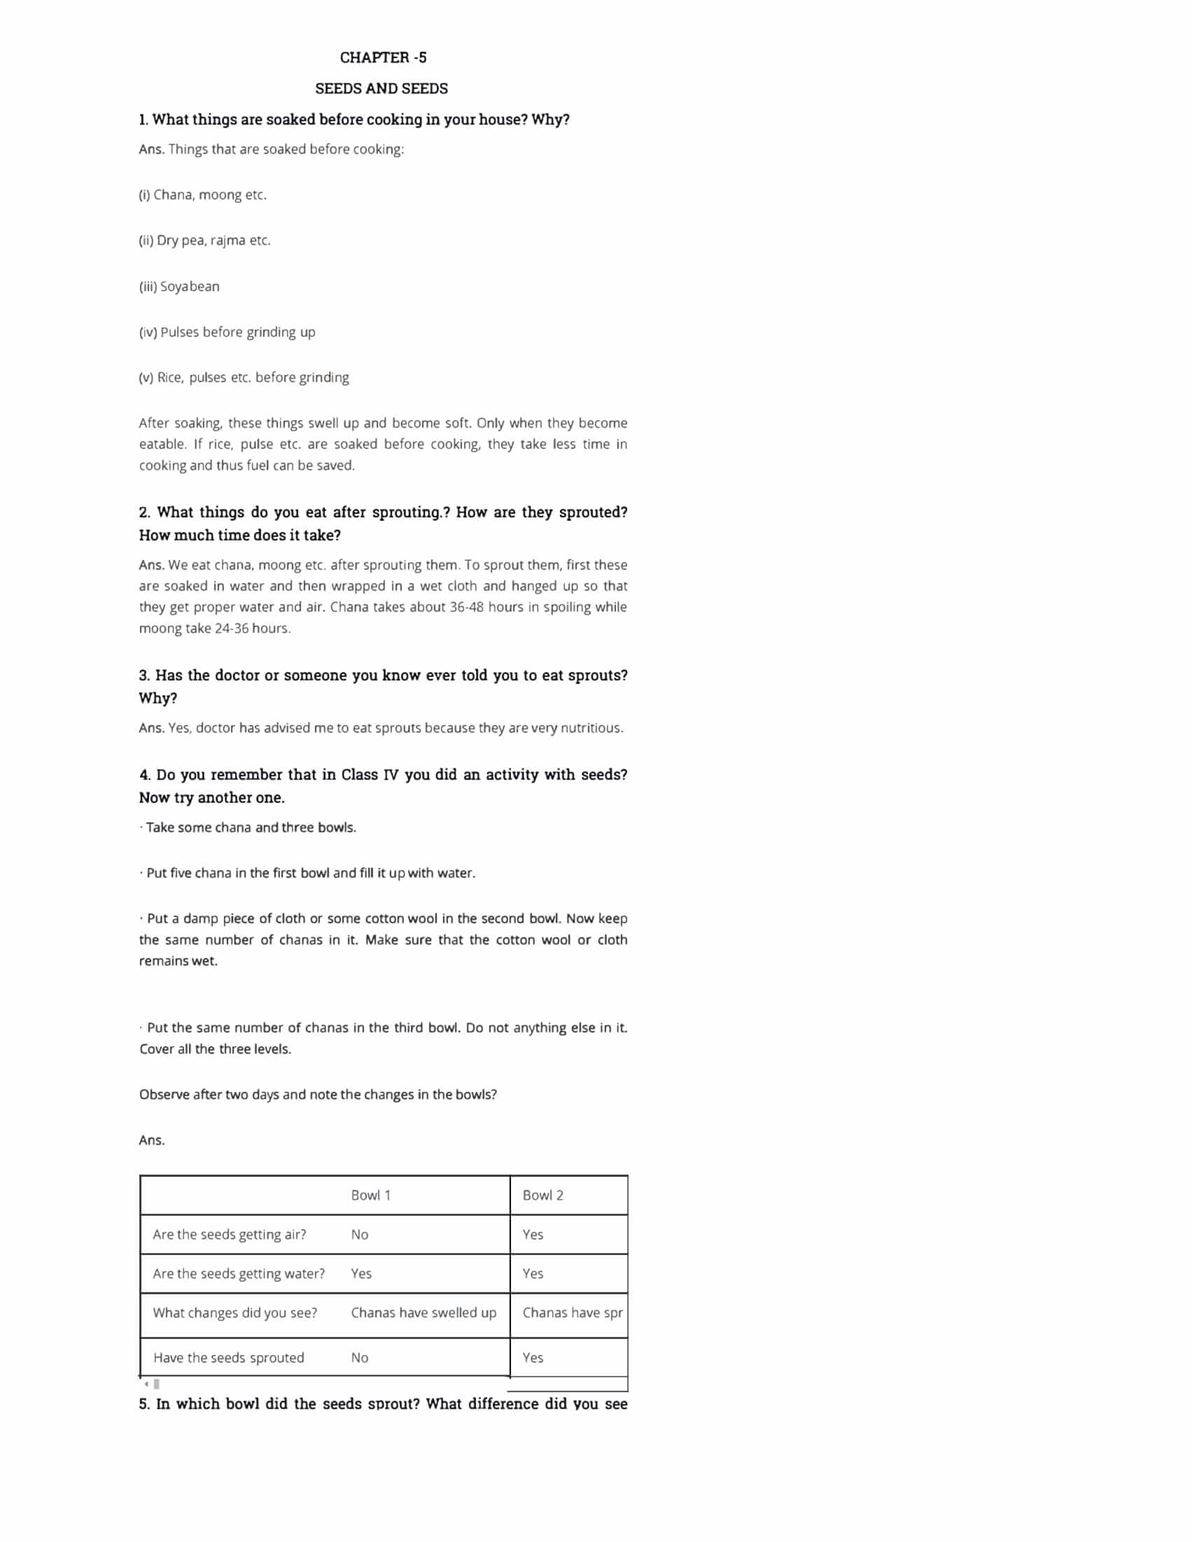 NCERT Solutions Class 5 EVS Chapter 5 Seeds and Seeds - Download Now